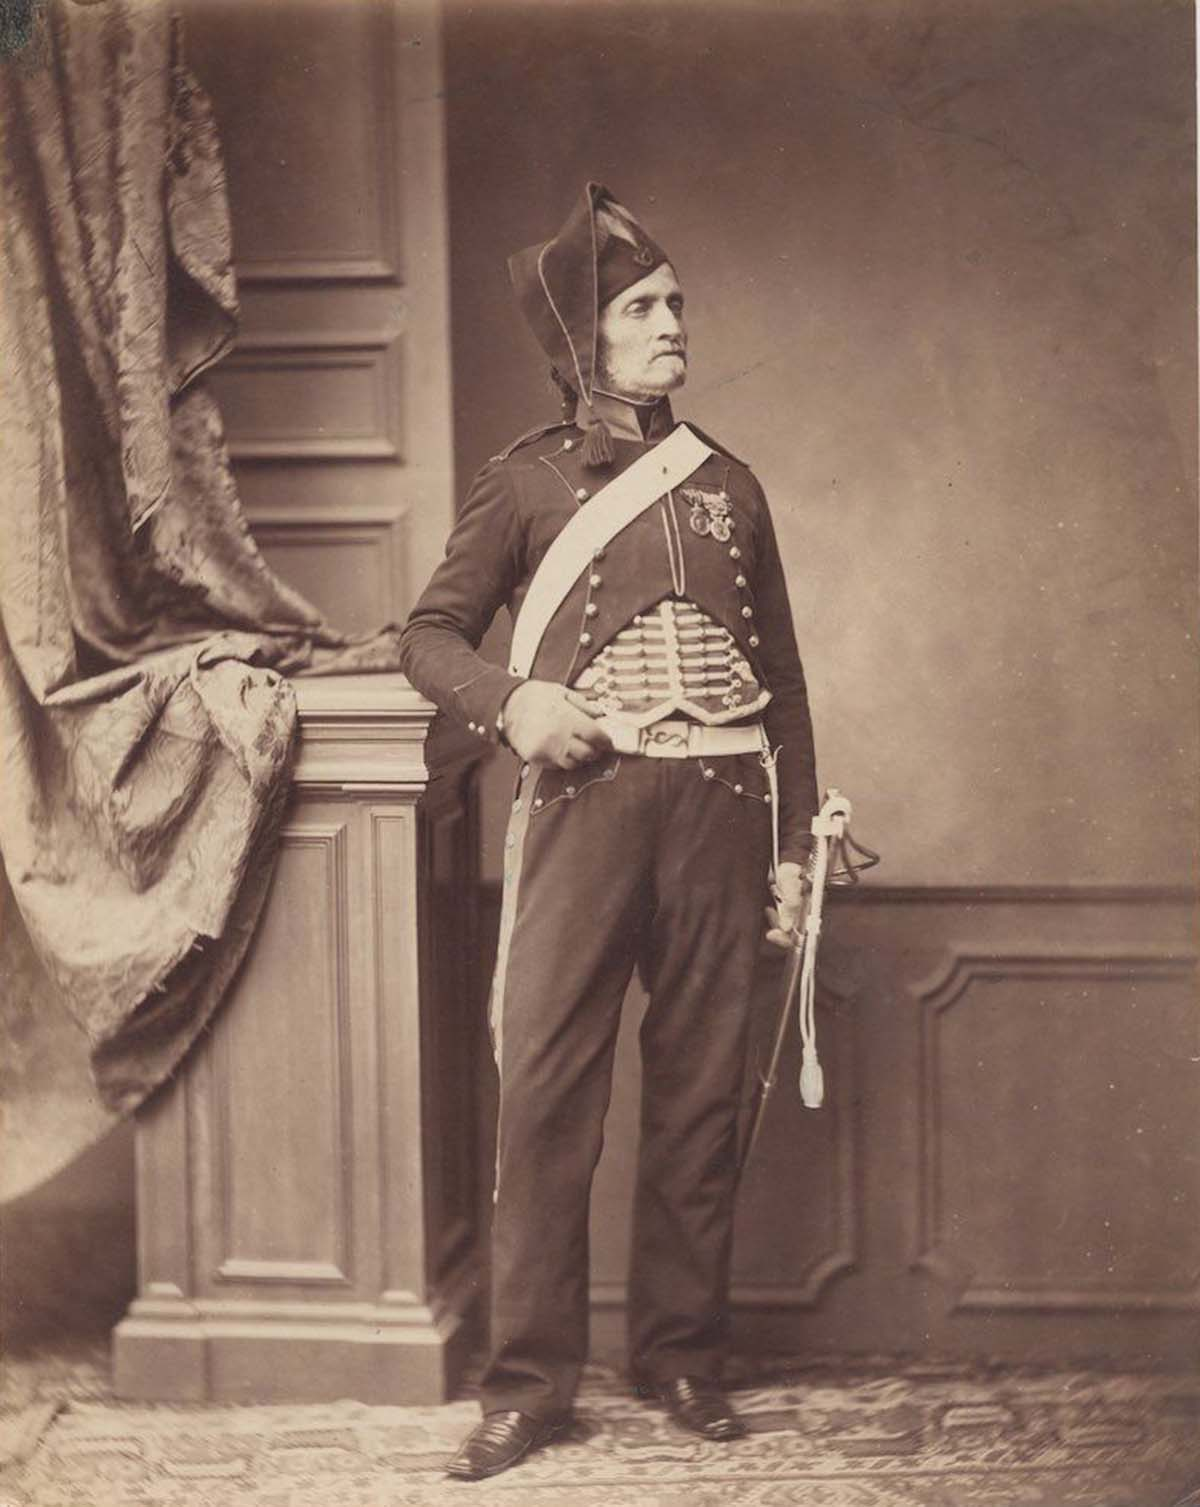 Monsieur Schmit of the 2nd Mounted Chasseur Regiment.